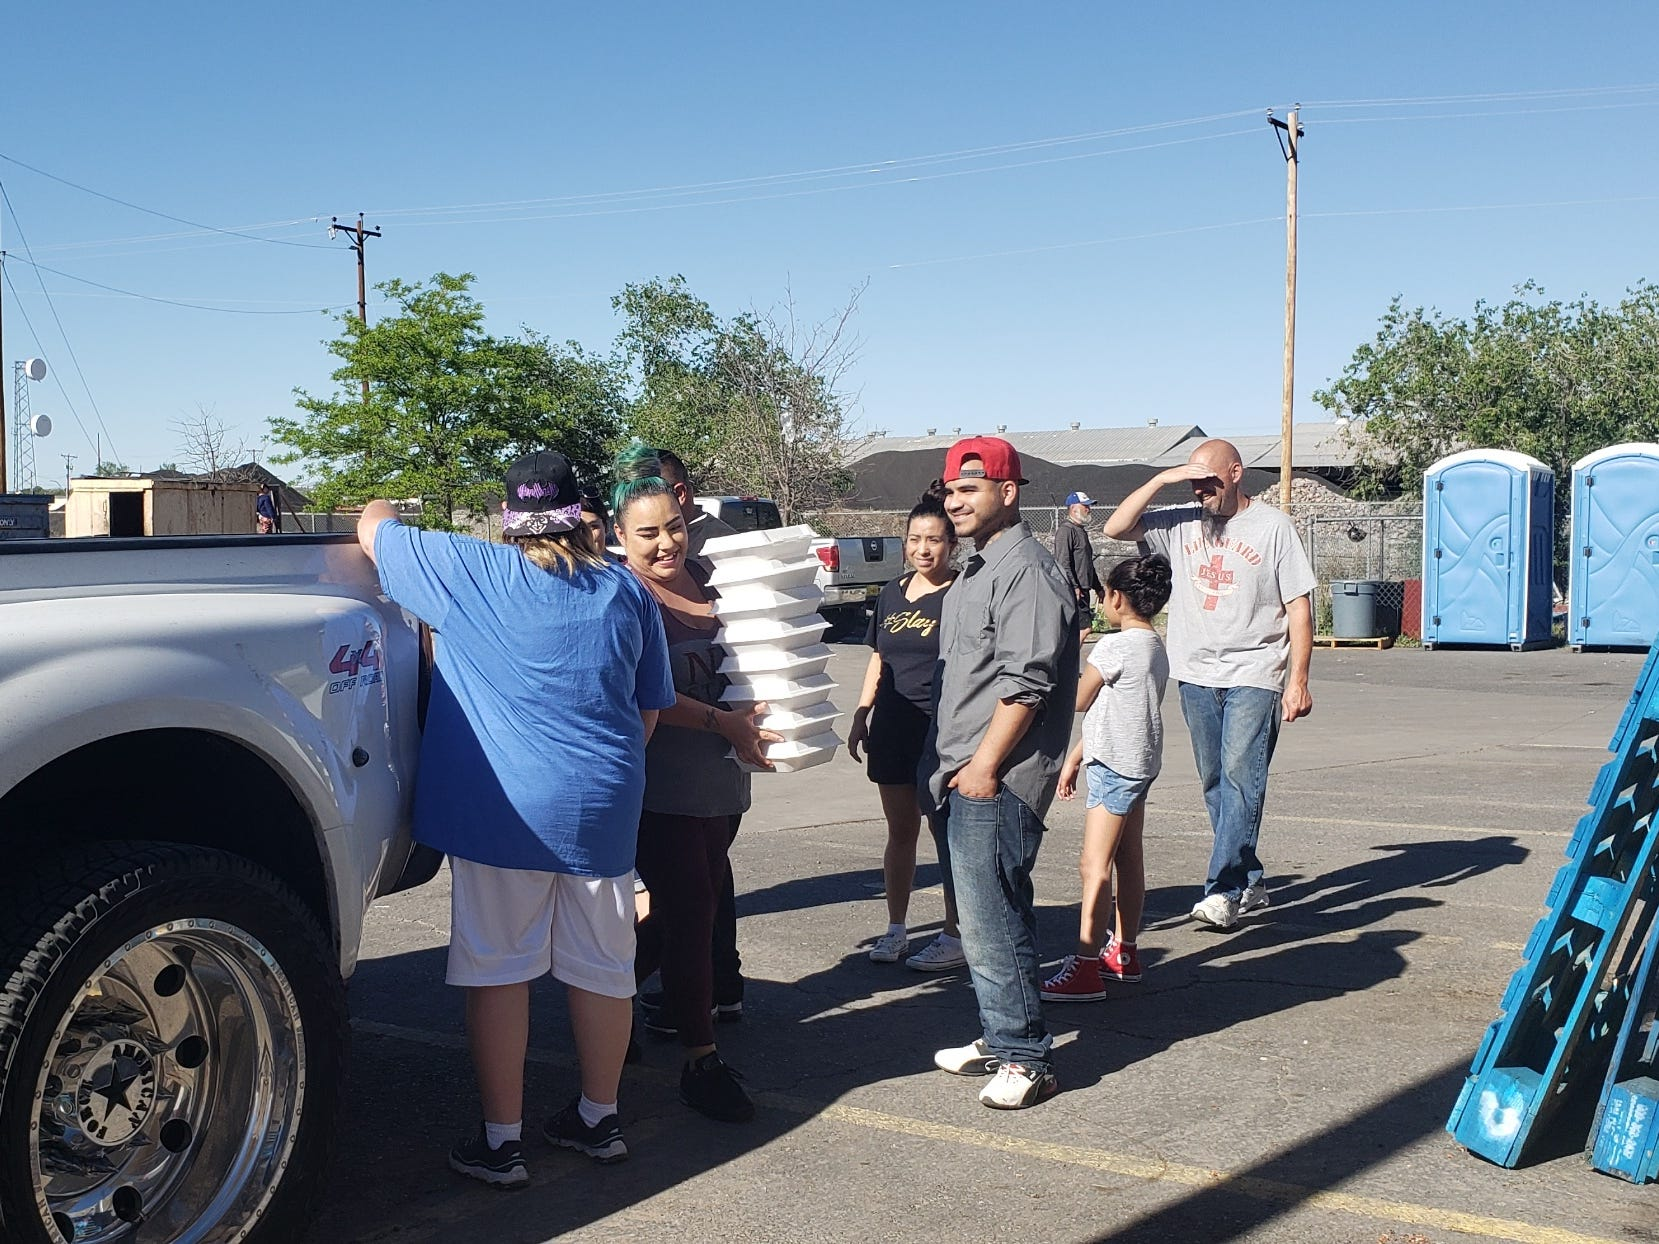 Volunteers deliver 250 meals to migrants at the Gospel Rescue Mission on Thursday, April 18, 2019.